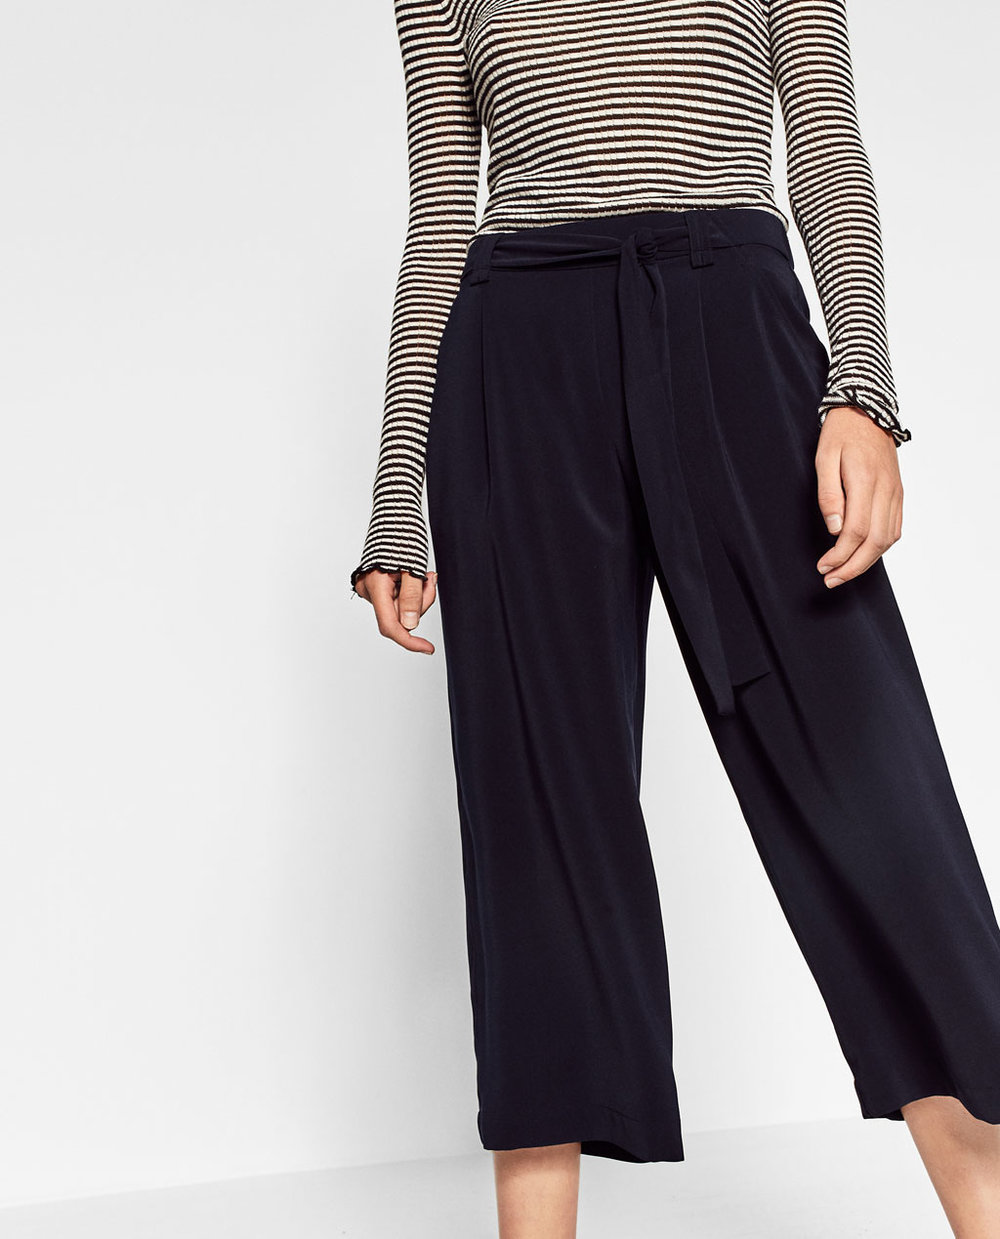 Excited that culottes are finally a thing in the US. Unlike straight legged capris that might cut off the length of your legs if you are a little shorter than the average human, culottes have a wider pant leg that closely resembles the flow and movement of a middy skirt. When made high-waisted, the silhouette is universally flattering.